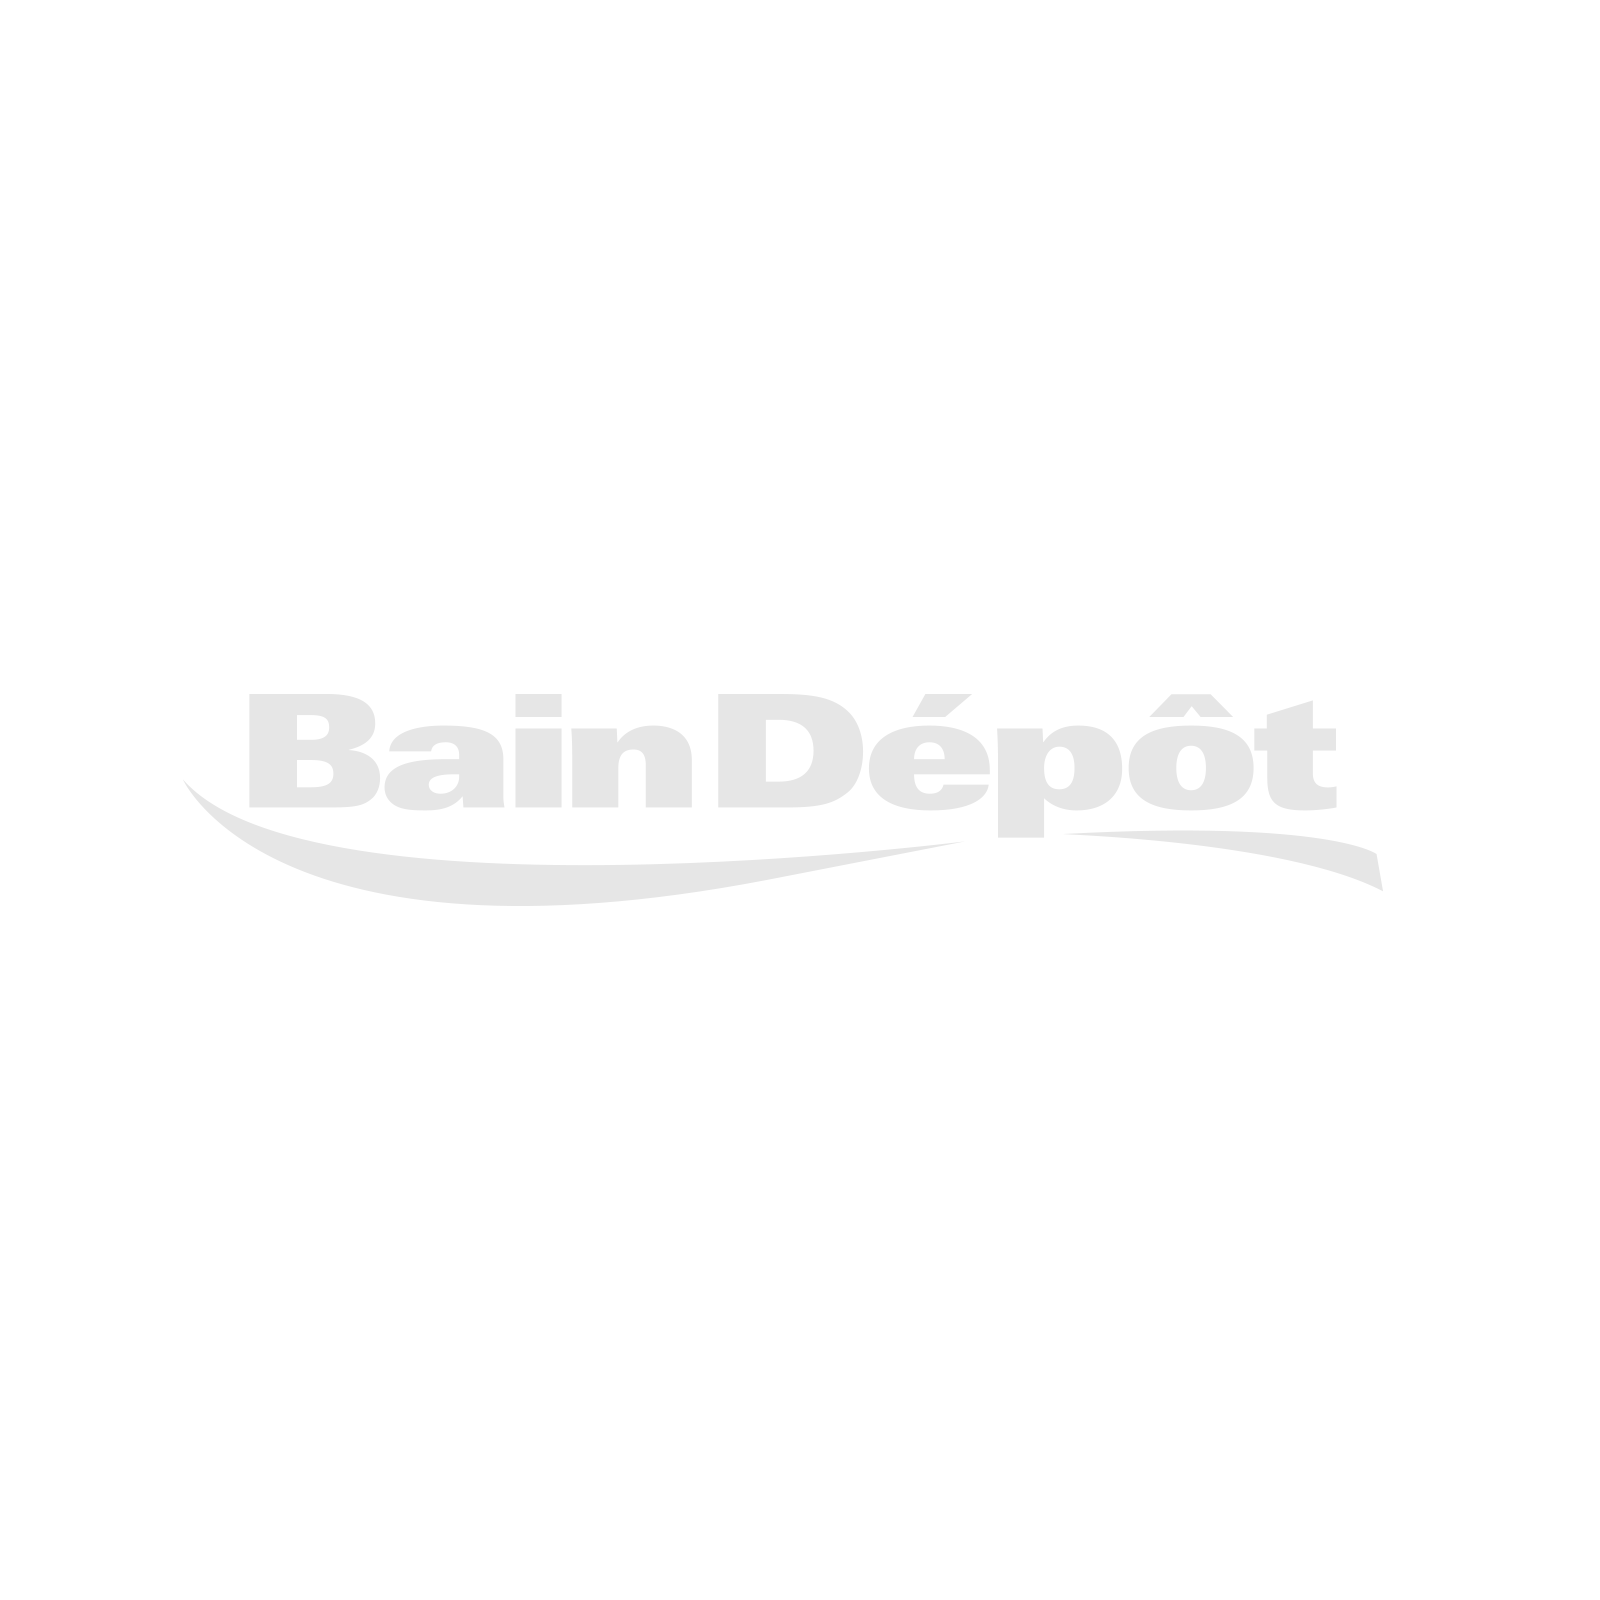 Rounded wall-mount sink faucet with a single handle and chrome finish